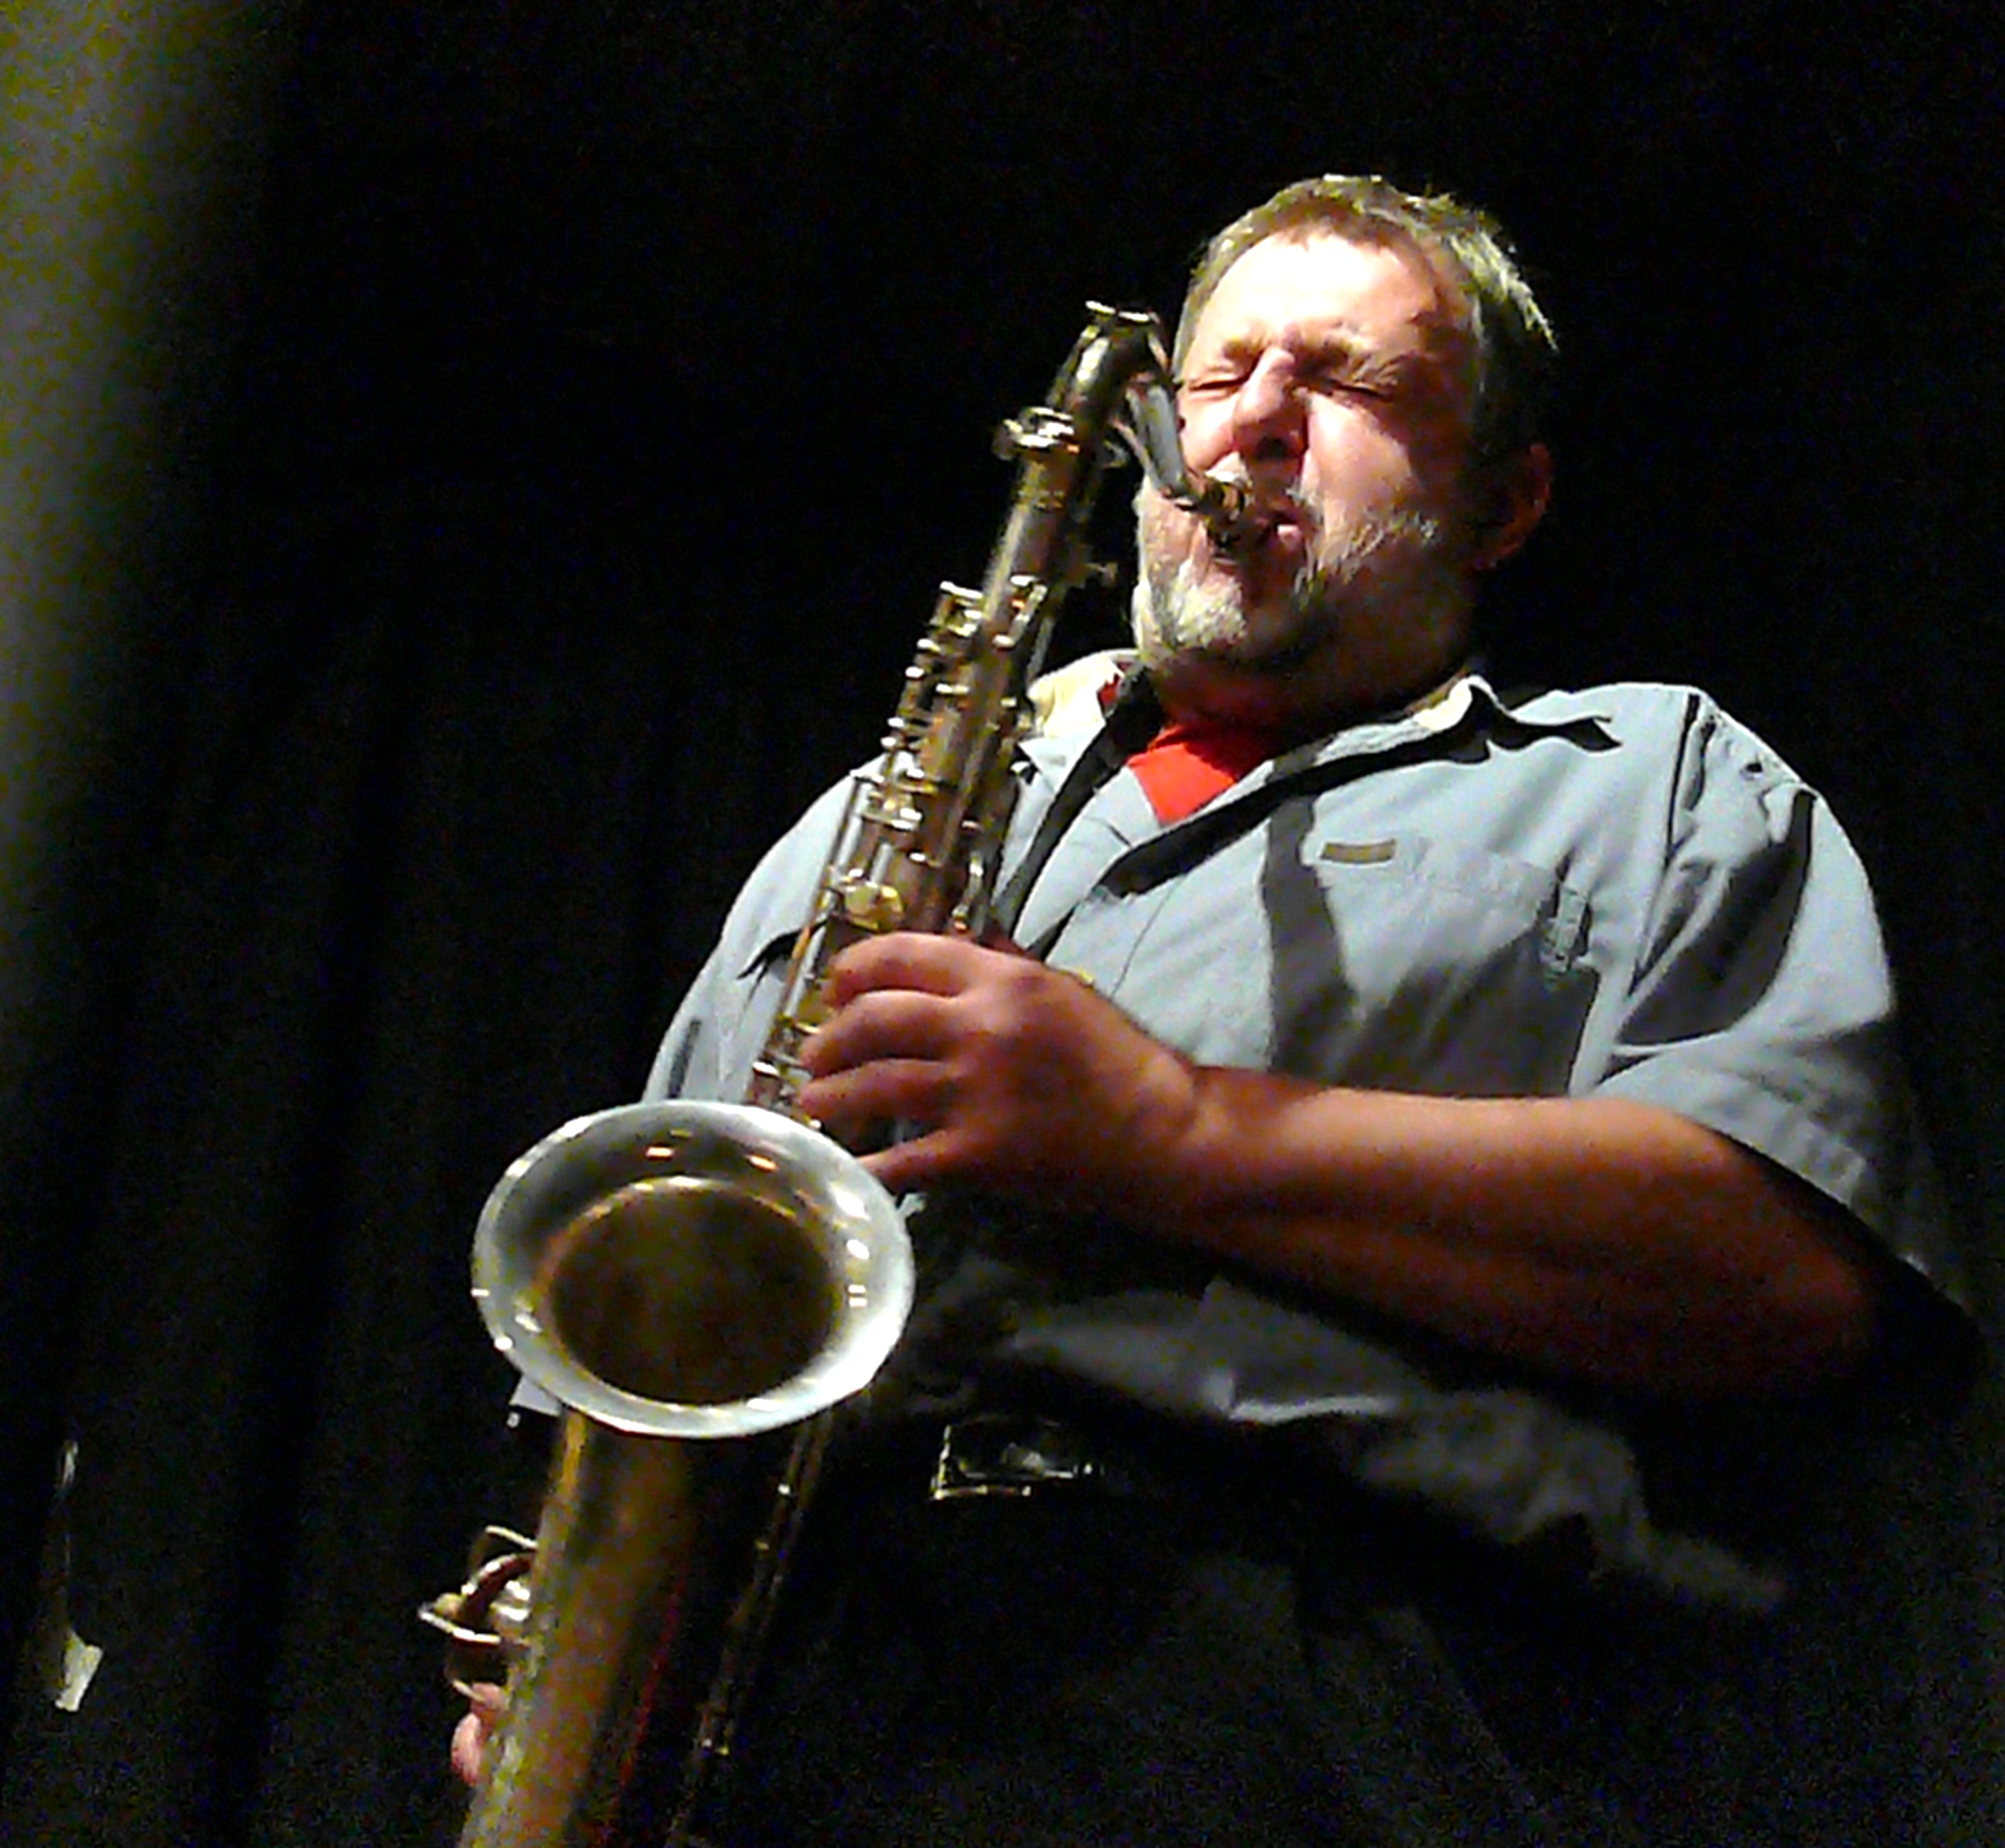 Paul Dunmall with the Profound Sound Trio at the Vortex, London, 23 November 2009